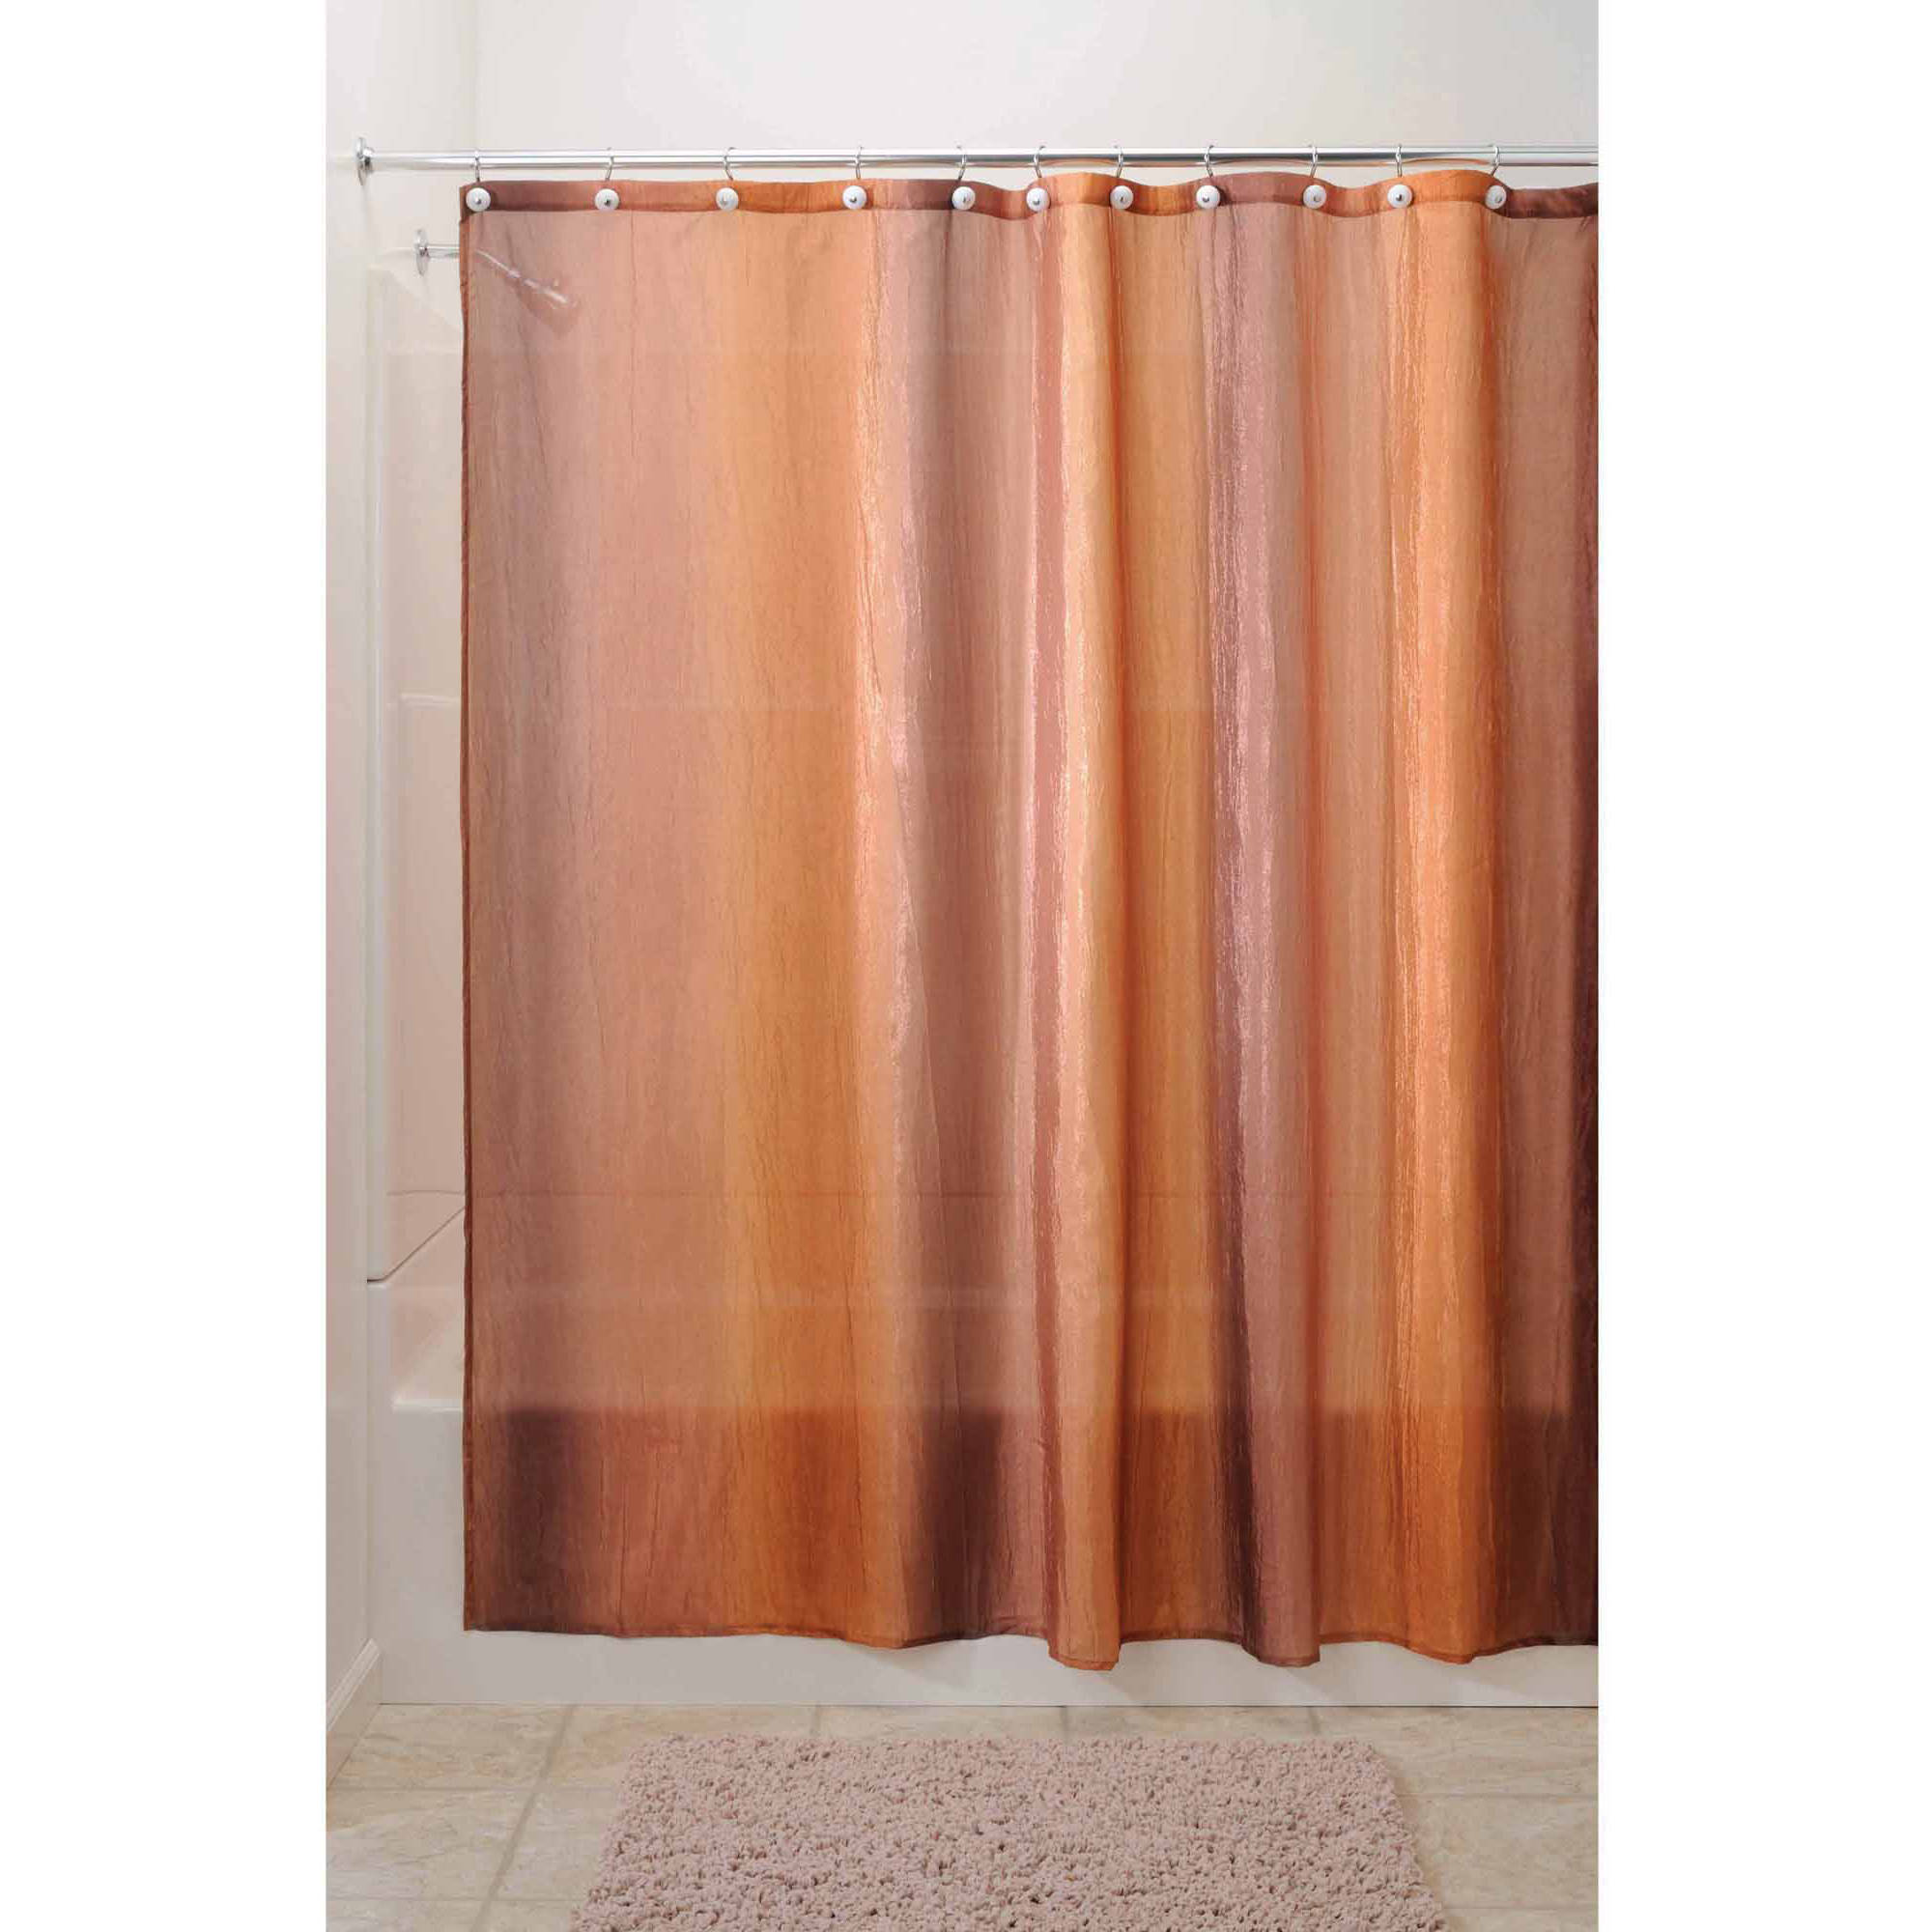 InterDesign Ombre Fabric Shower Curtain, Various Colors